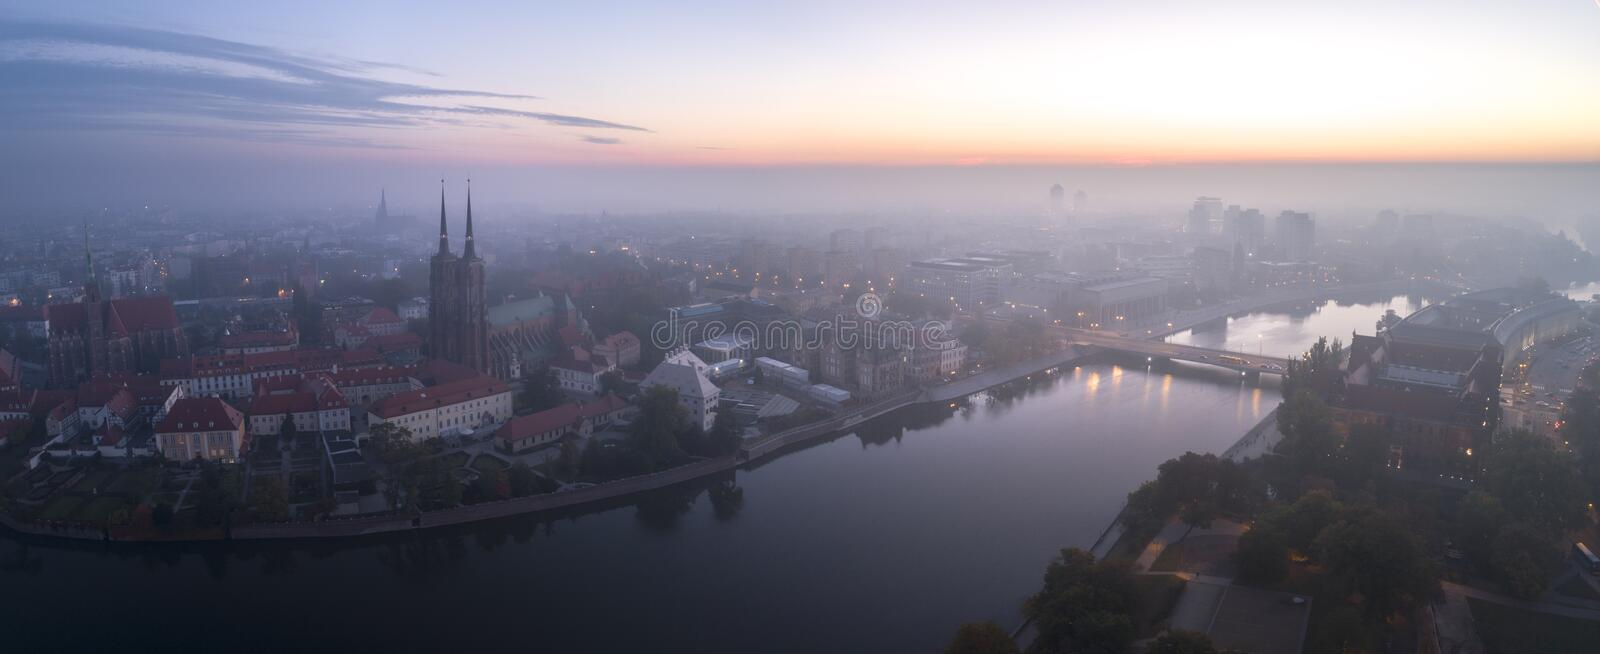 Aerial view of the smog over the waking city at dawn, in the distance buildings covered with fog and smog royalty free stock photography